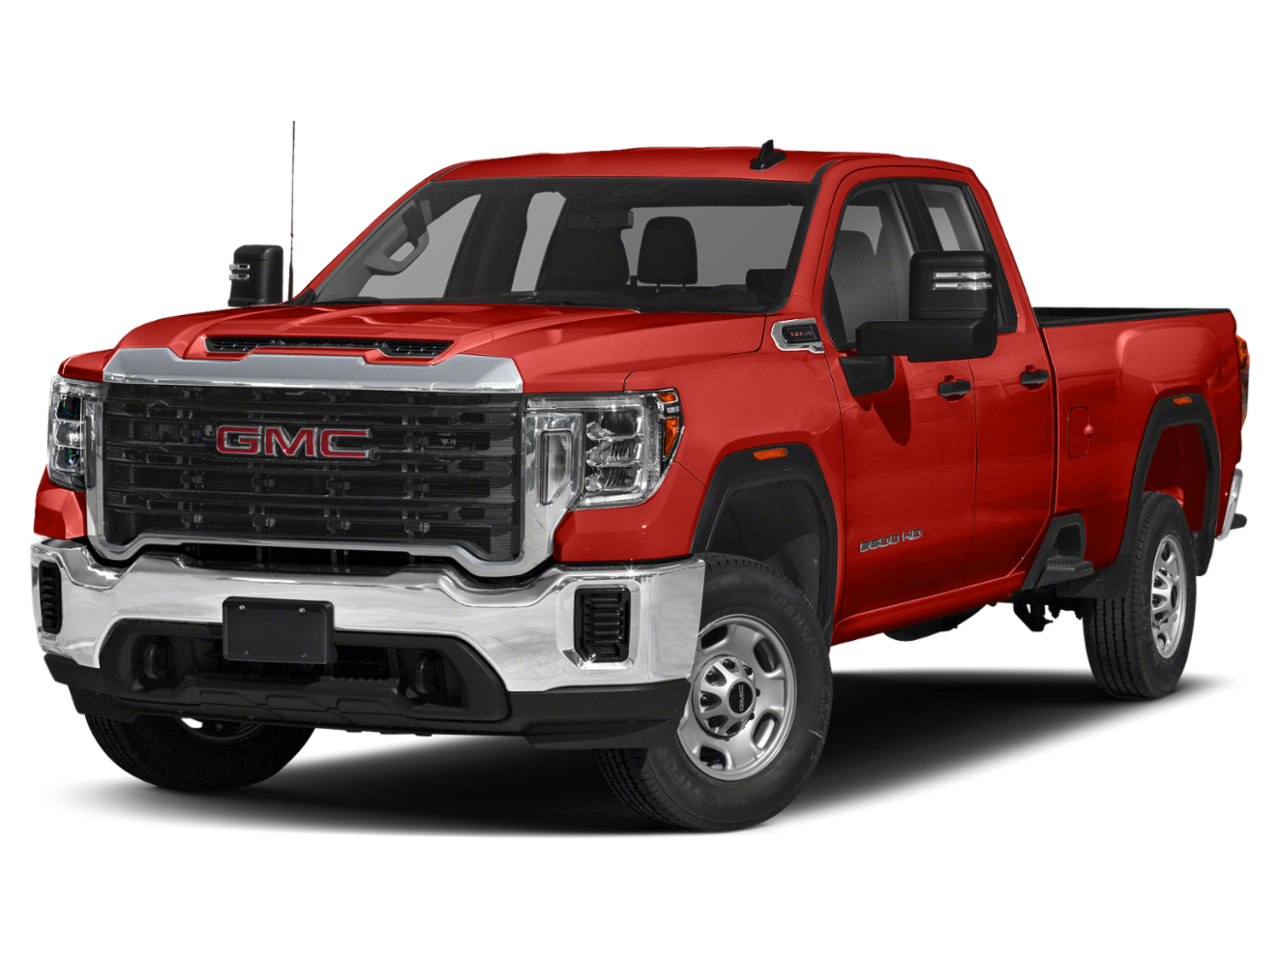 2021 Gmc Sierra 2500hd Colors Trims Pictures Wilhelm Chevrolet Buick Gmc In Jamestown Nd